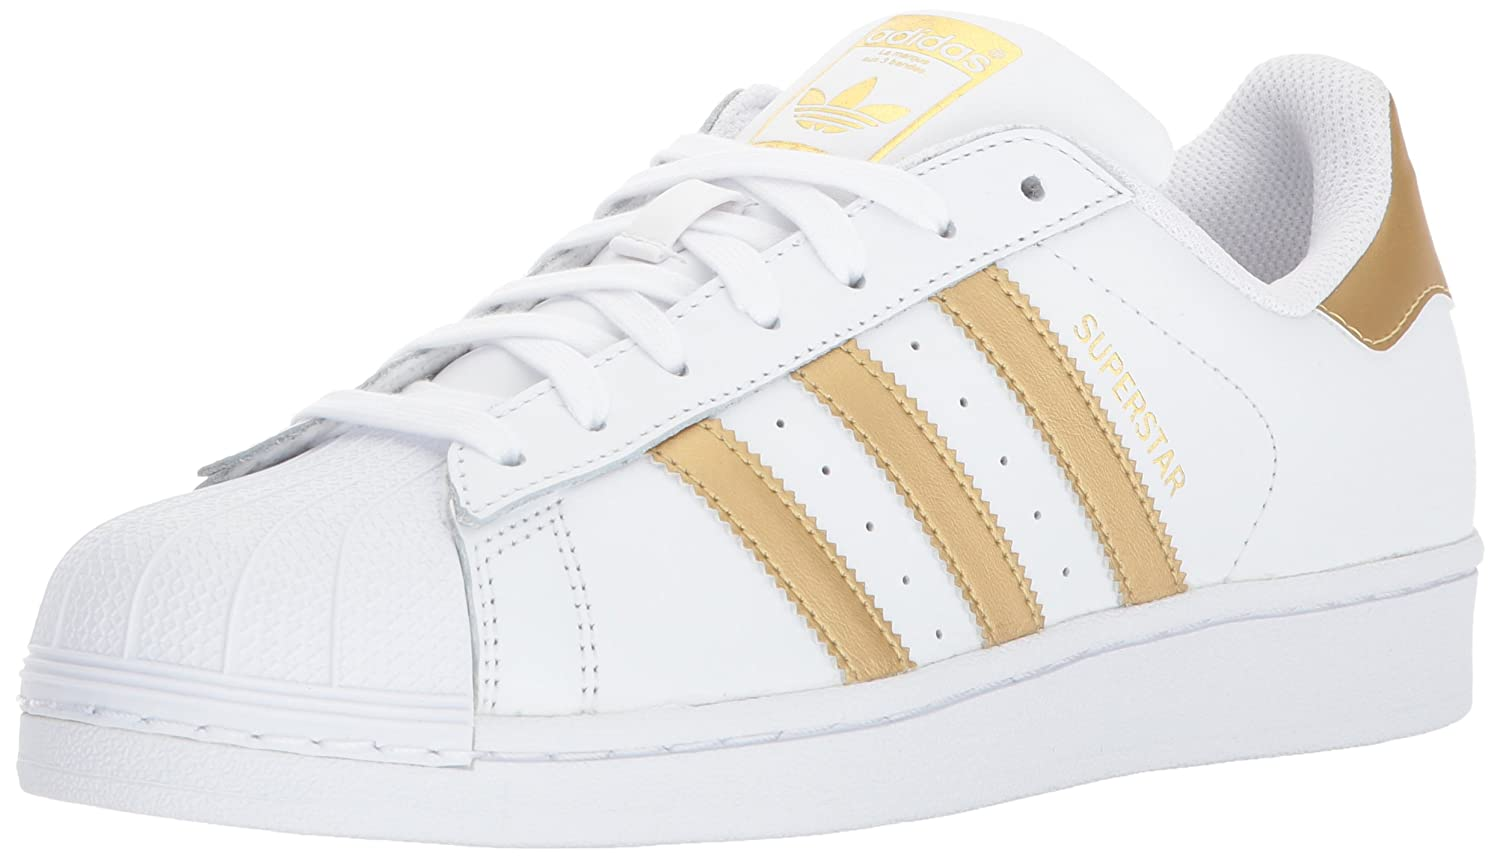 adidas Women's Originals Superstar B01J4S7Q7I 6 B(M) US|White/Metallic Gold/Gold